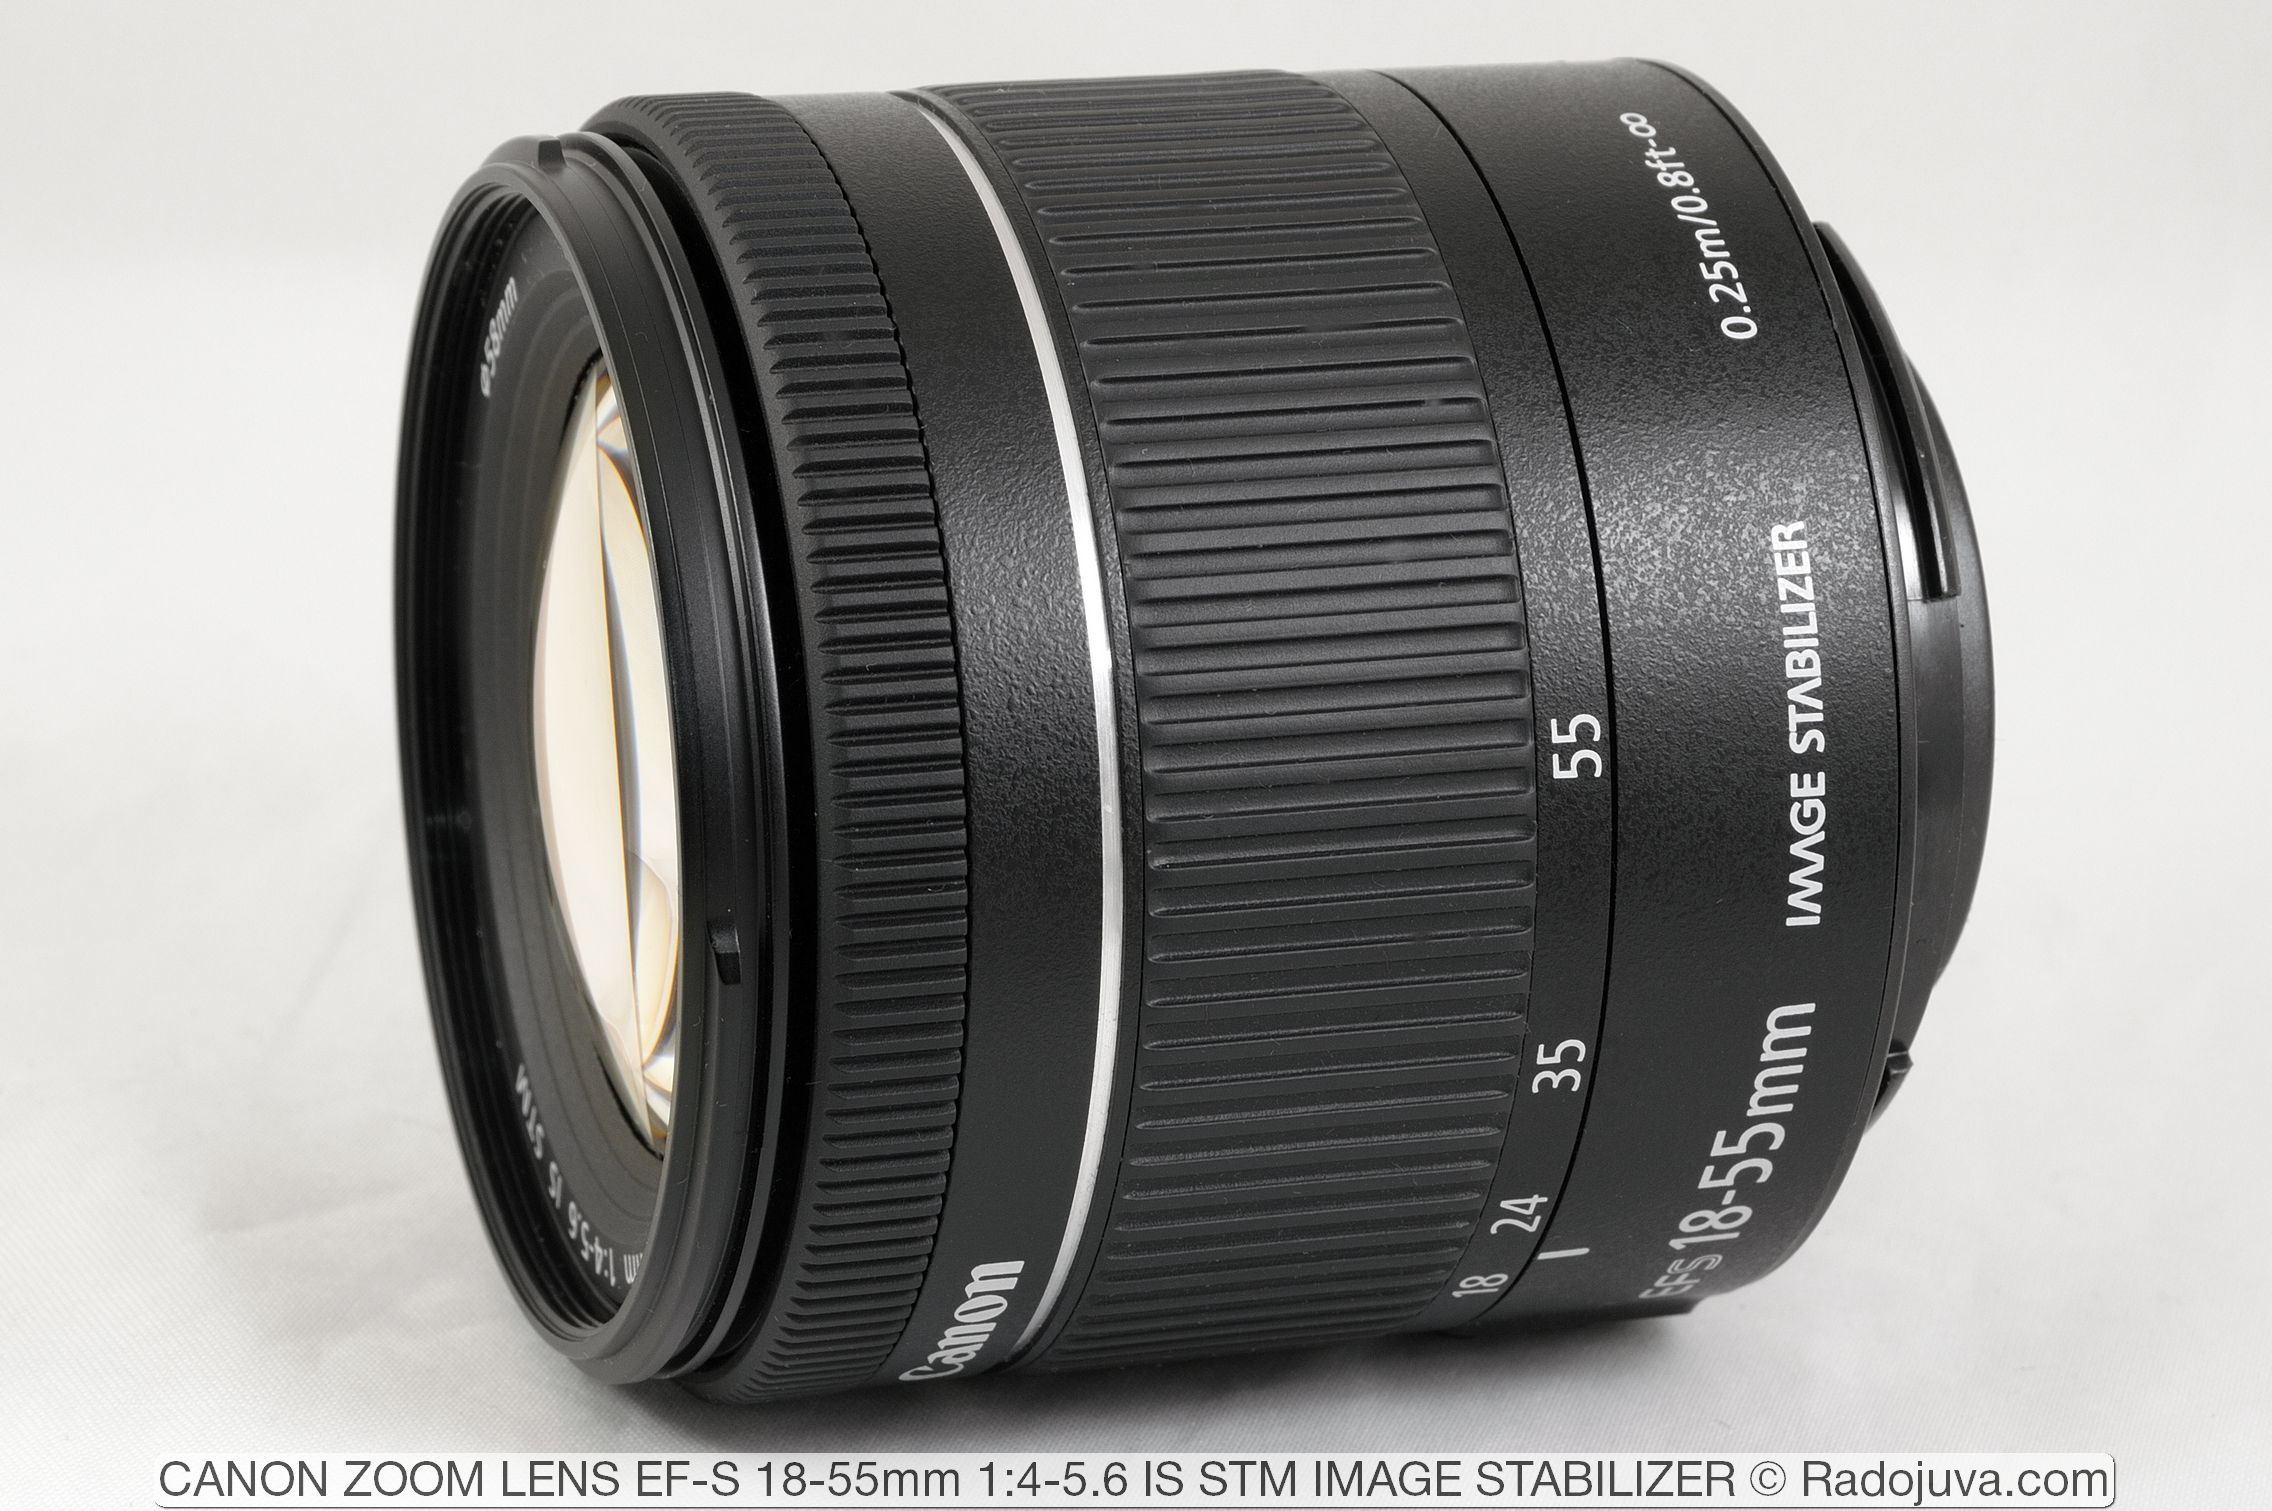 Canon Zoom Lens EF-S 18-55mm 1:4-5.6 IS STM Image Stabilizer